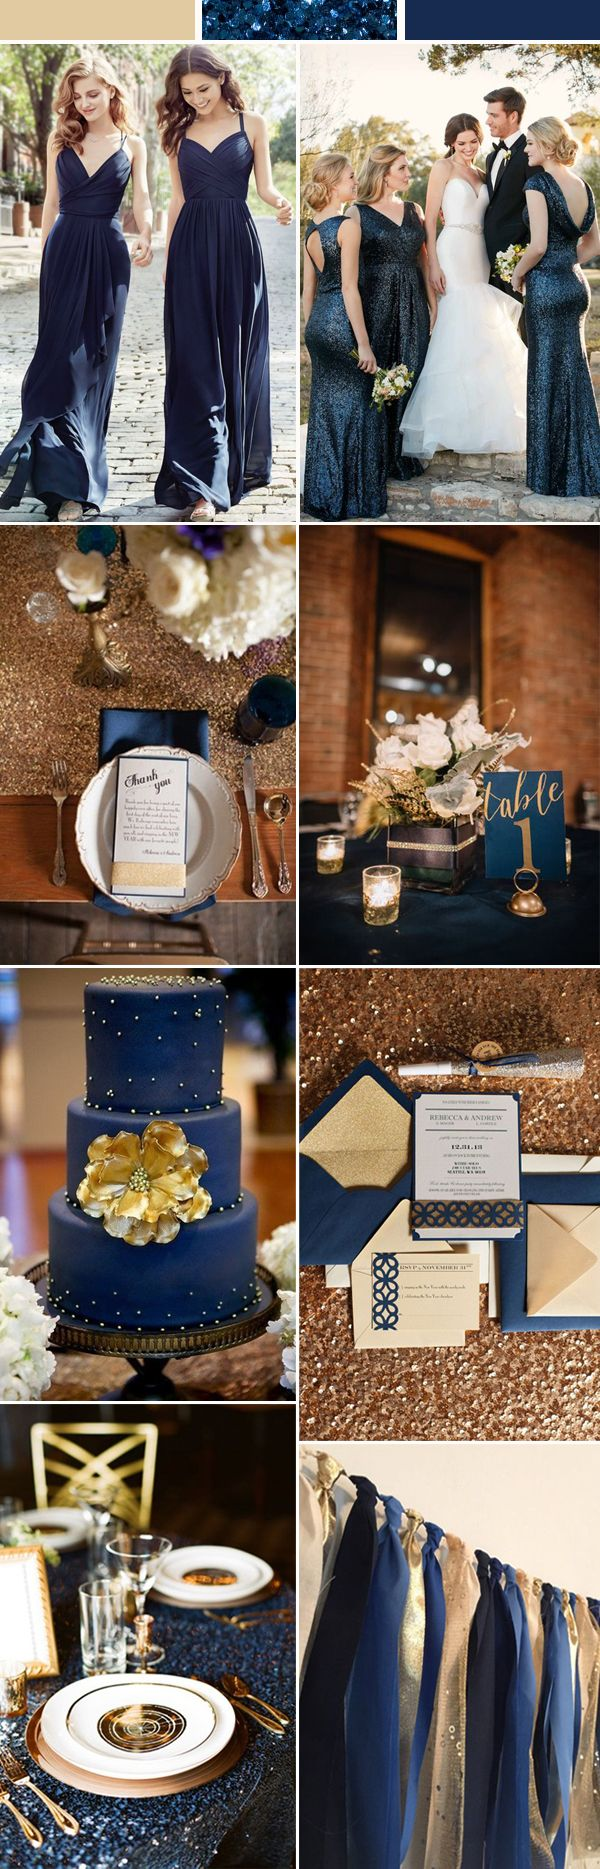 gold and navy blue wedding color ideas / http://www.deerpearlflowers.com/top-6-wedding-trends-for-2018/